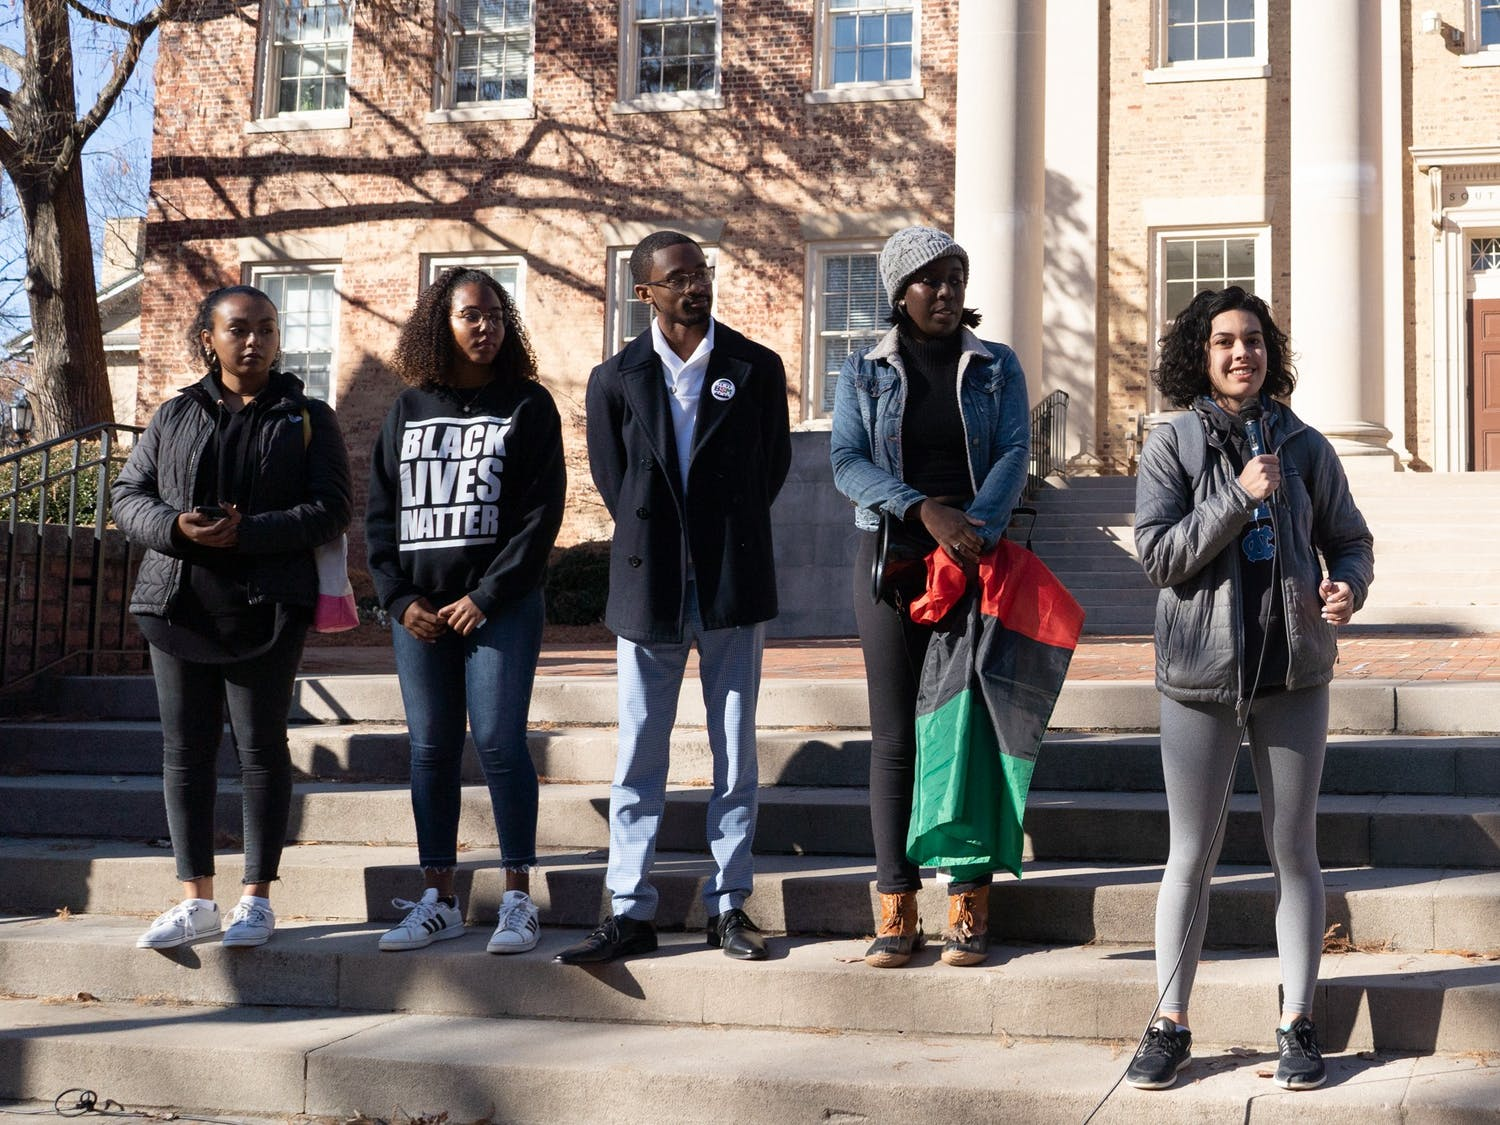 Student Body President Ashton Martin speaks on the steps of South Building on Thursday, Dec. 5, 2019.  The Black Student Movement, Black Congress and local and student activists protested the University giving 2.5 million dollars to the Sons of Confederate Veterans, which were also given Silent Sam, the Confederate monument torn down by activists on the first day of classes in 2018.